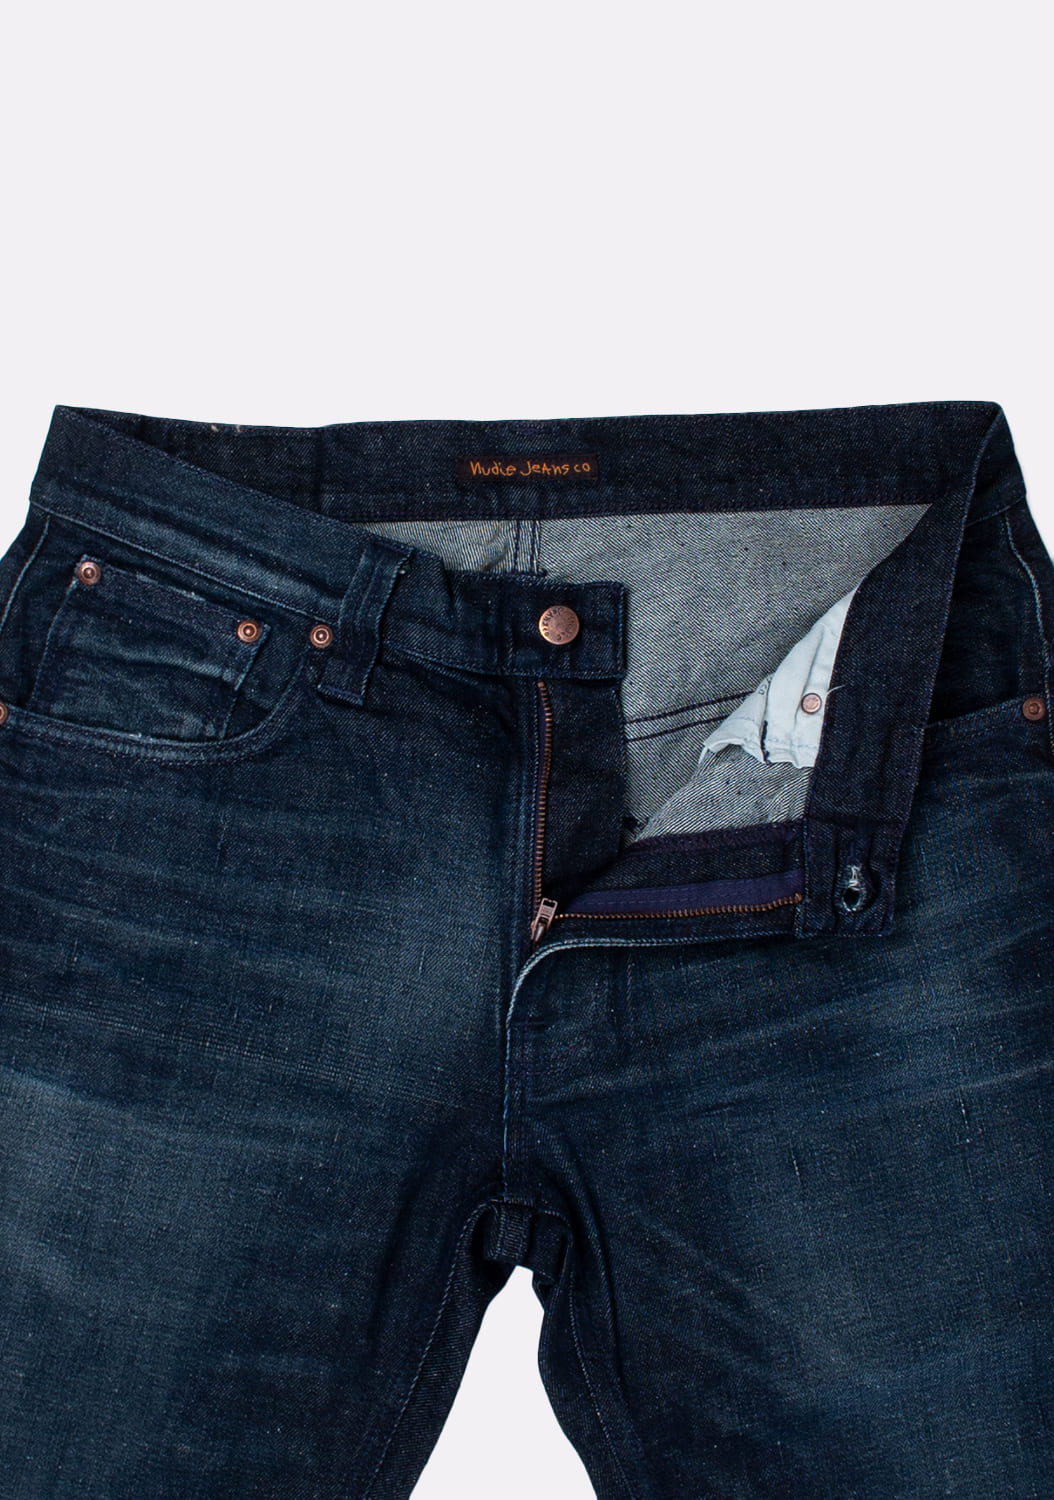 Nudie-Jeans-Tape-Ted-Org.-Nightcrawler-dzinsai-dydis-34-32 (3)